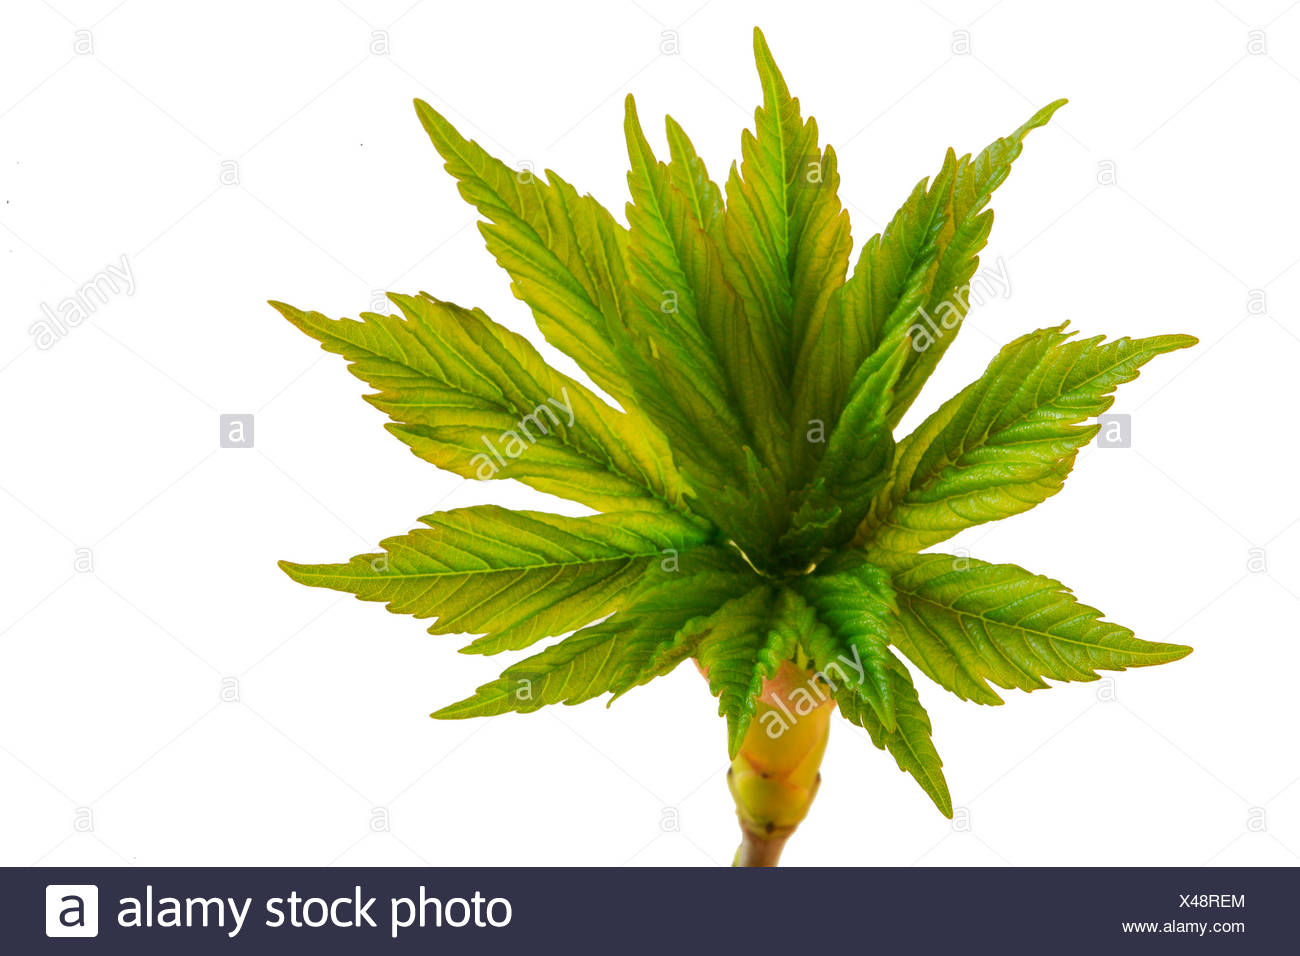 Fresh green of a maple tree (Acer), spring shoots - Stock Image